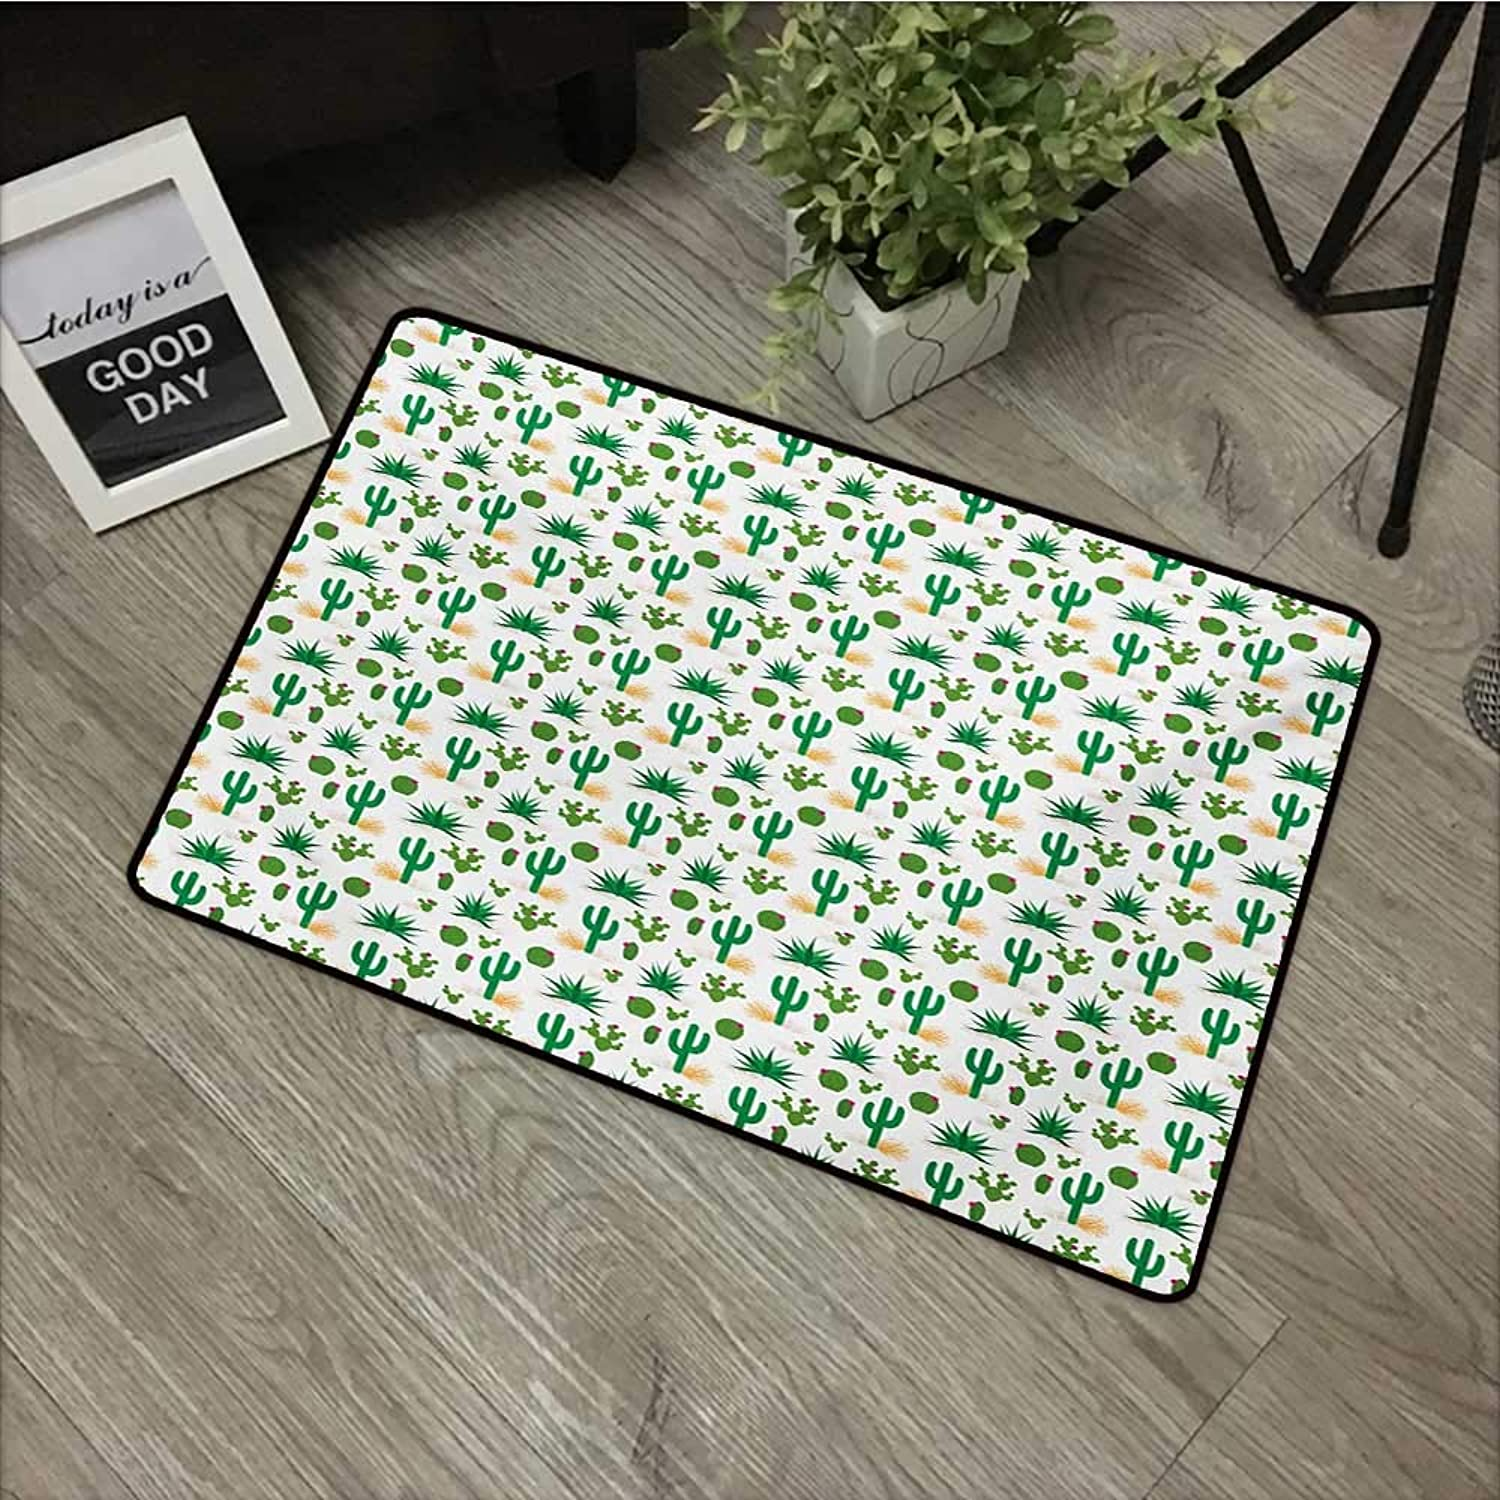 Pad W35 x L47 INCH Southwestern,Cactus Pattern with Agave Saguaro Prickly Pear Succulent Plants and Tumbleweed,Multicolor Easy to Clean, no Deformation, no Fading Non-Slip Door Mat Carpet